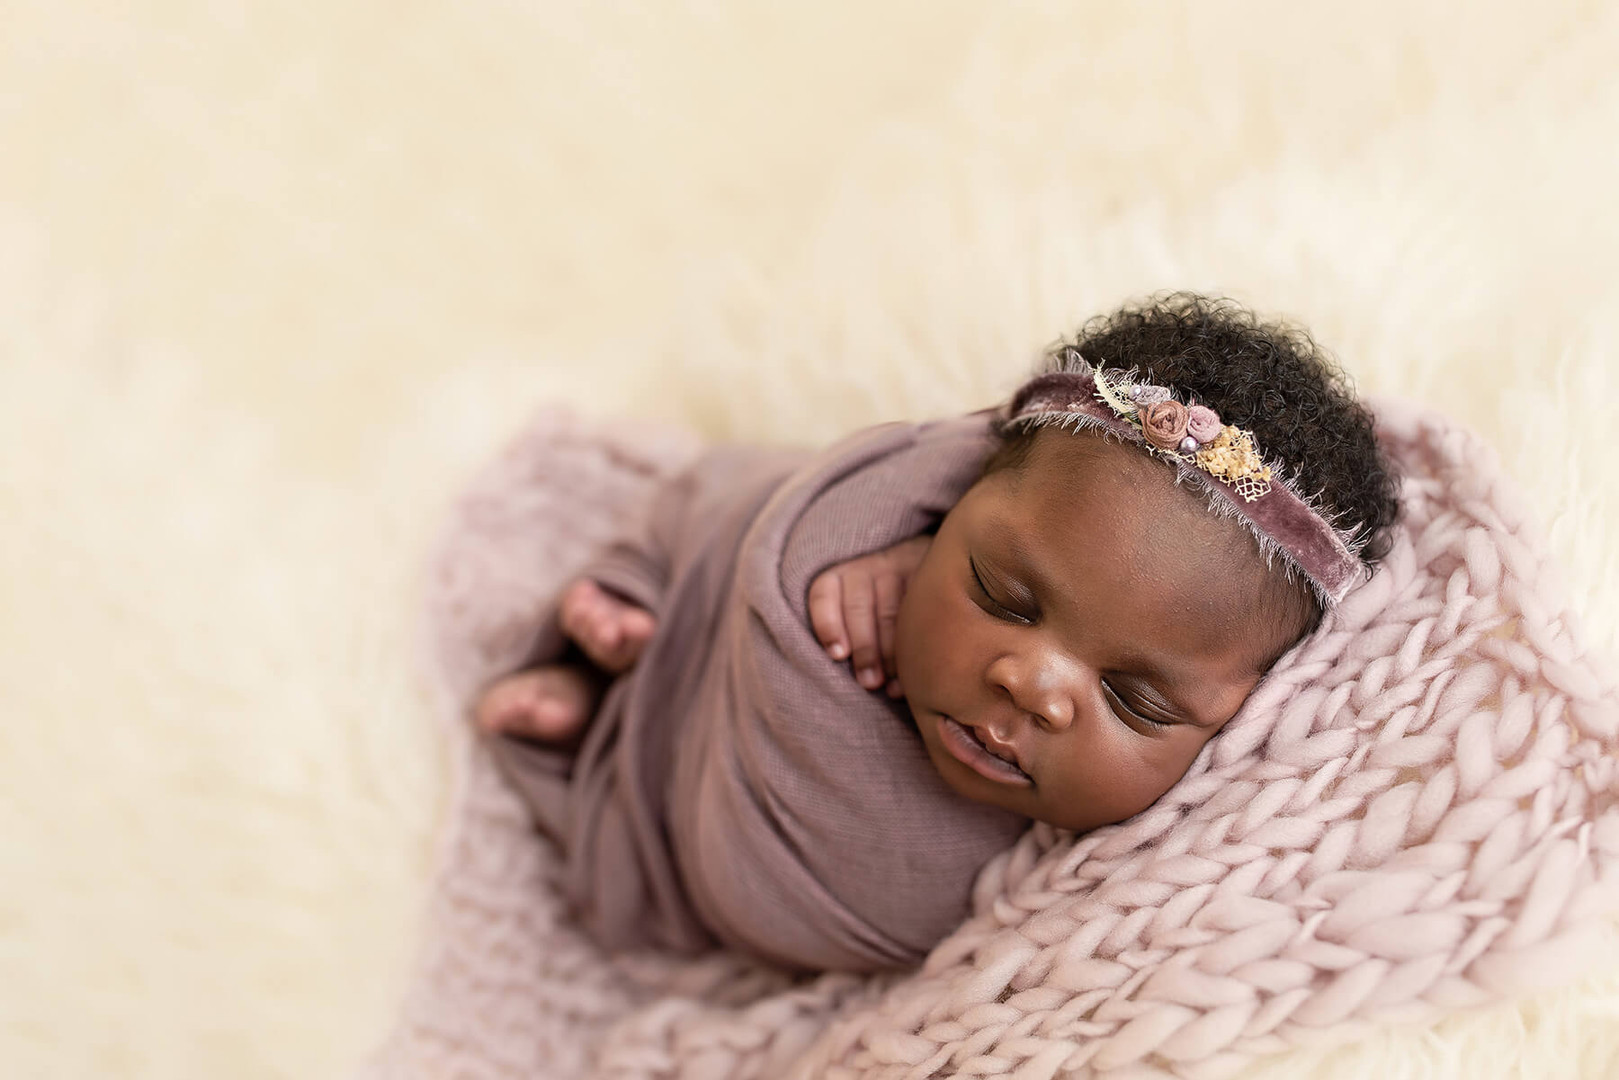 Josephine Photography | Newborn & Maternity Portraiture in CT